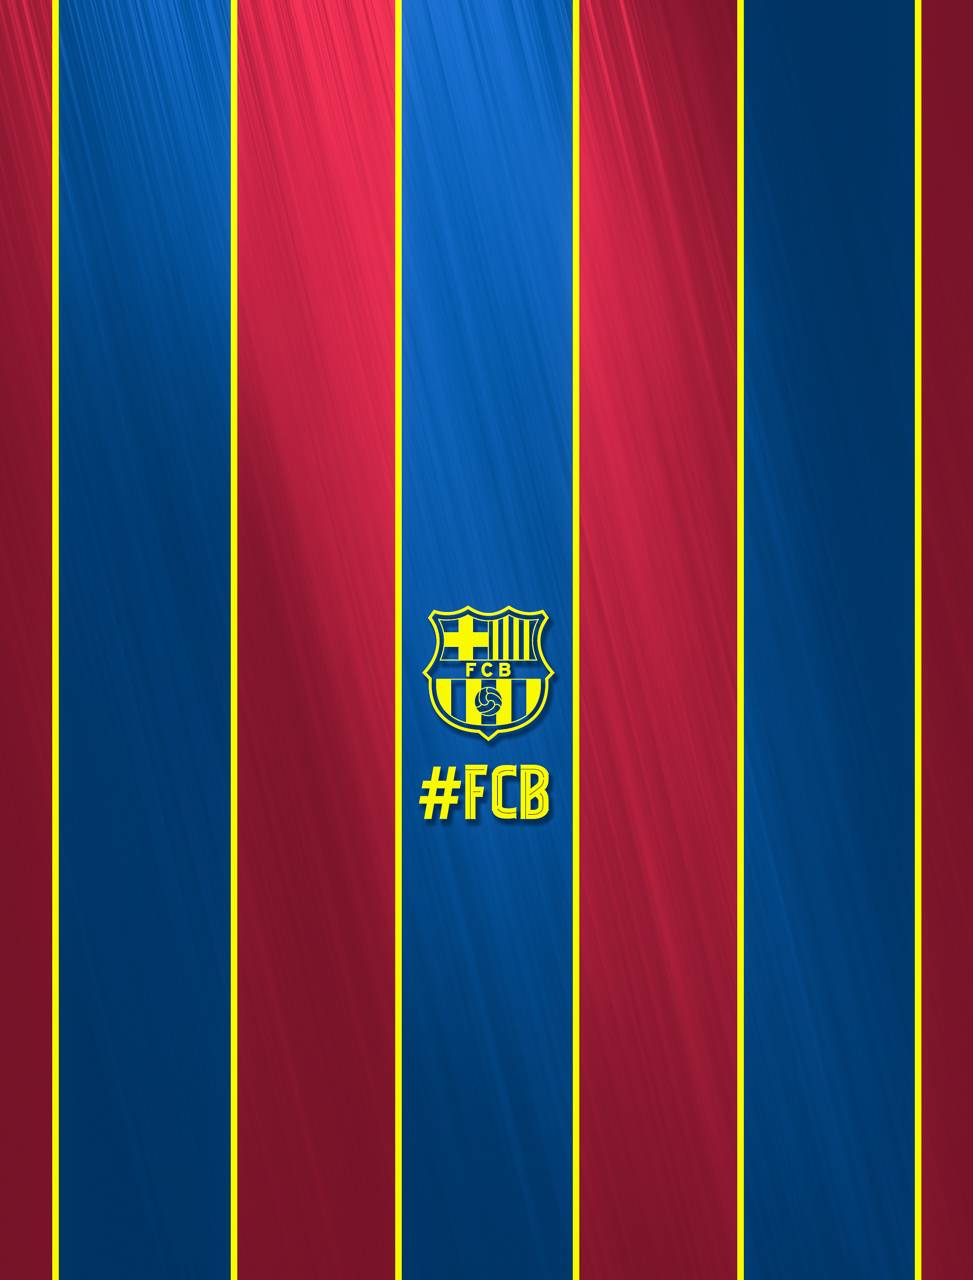 BARCA 2021 Wallpaper By PAUL LAGODNY A4 Free On ZEDGE™